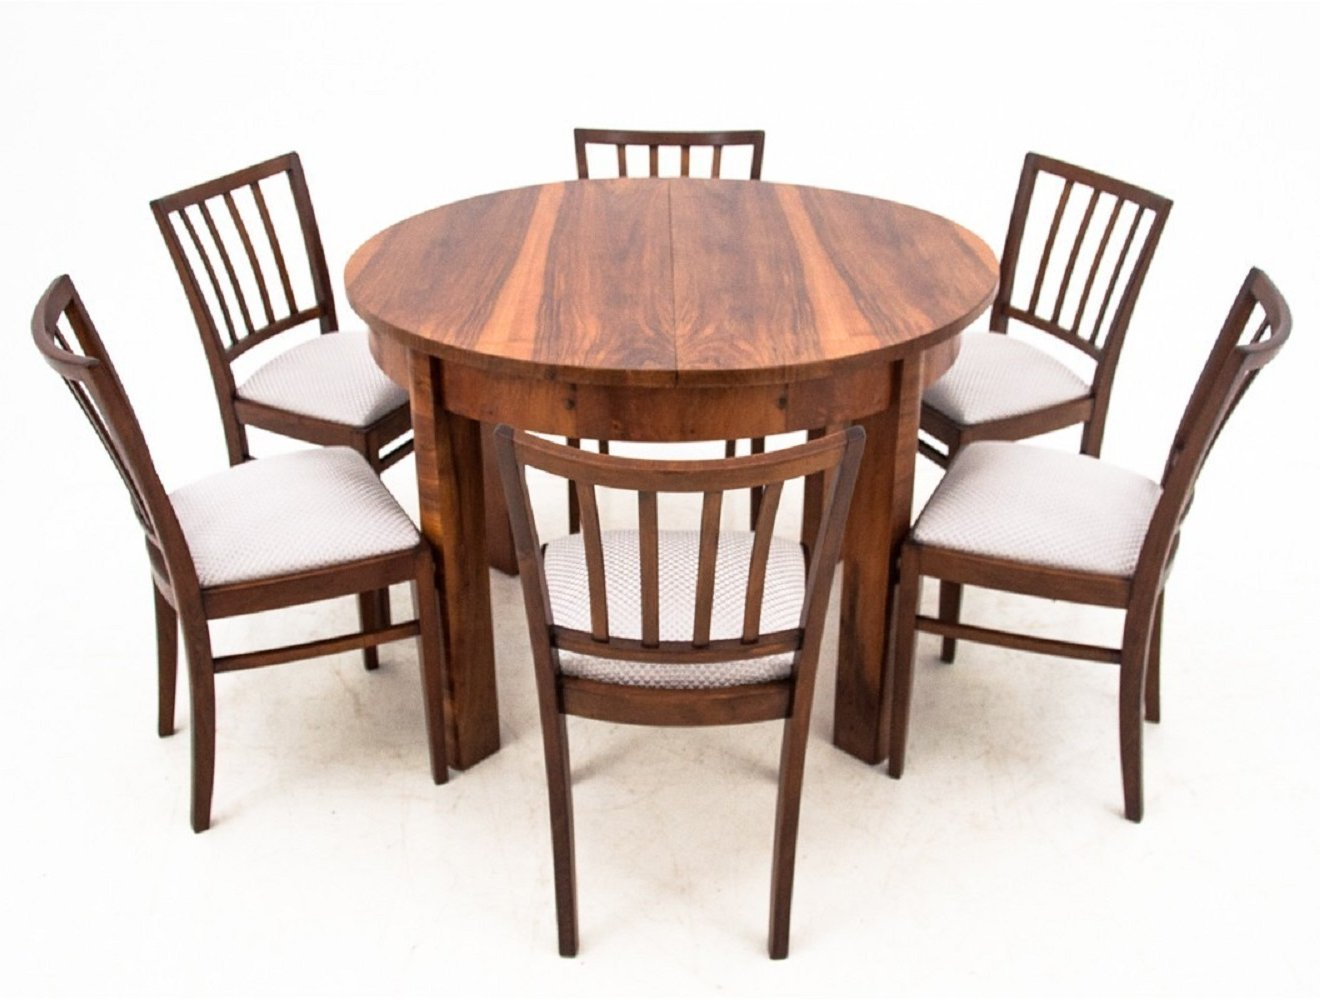 Art Deco Dining Table With Six Chairs 1940s 135294